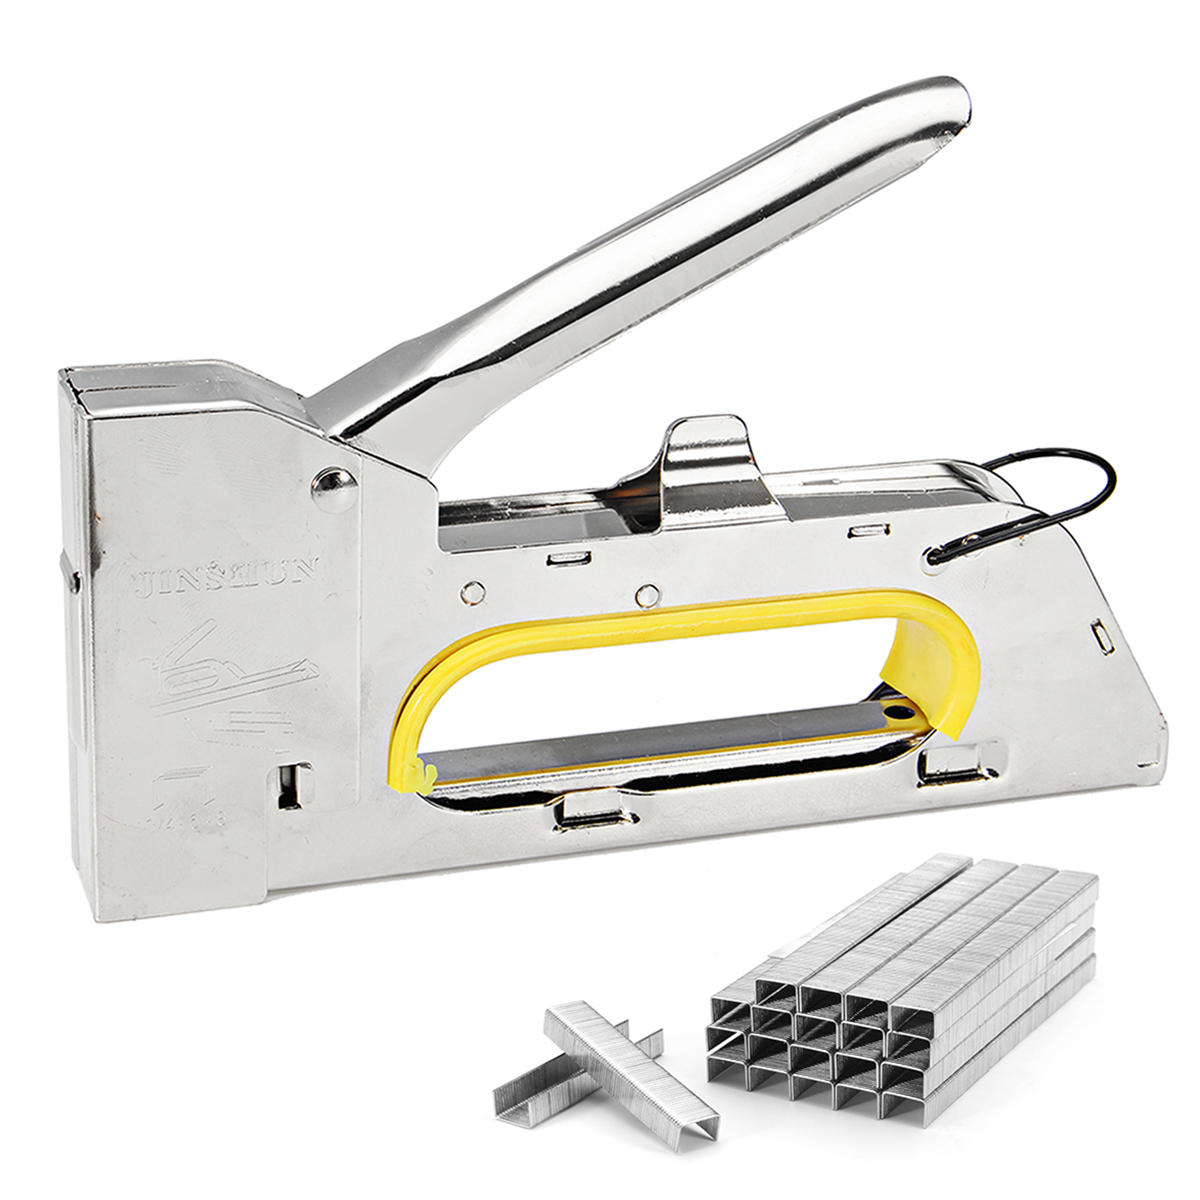 4 6 8mm Handy Heavy Duty Paper Furniture Staple Gun Tacker Stapler With 2400 Staples